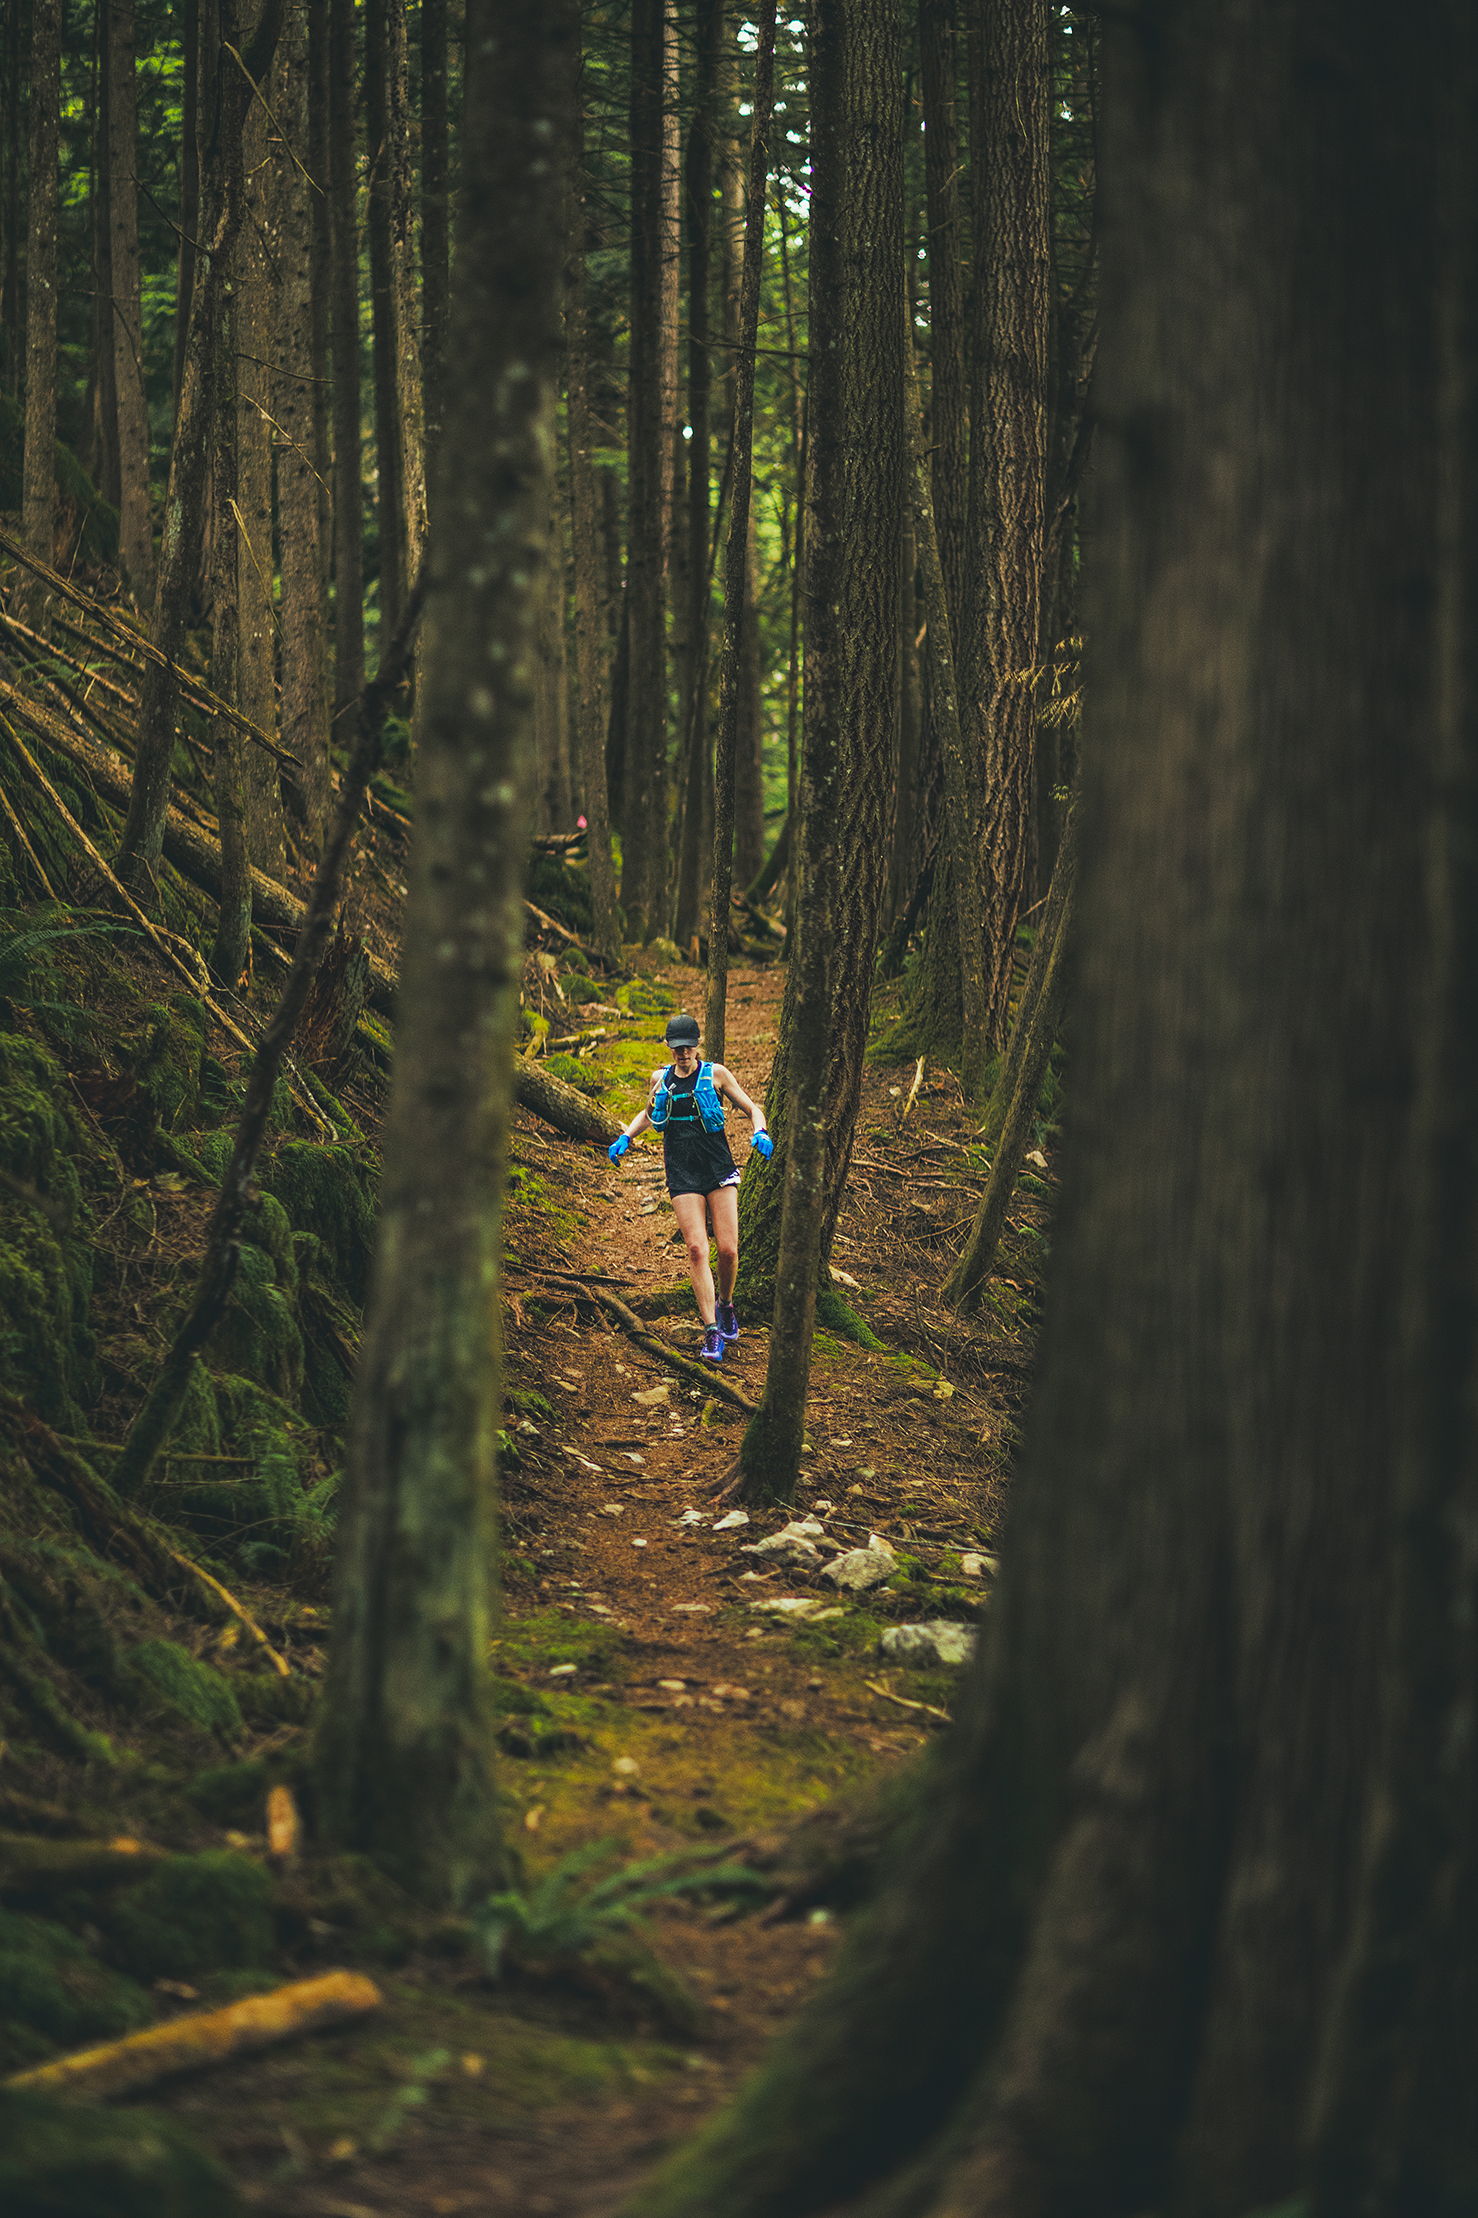 Fraser Valley Trail Races - Bear Mountain - IMG_2193 by Brice Ferre Studio - Vancouver Portrait Adventure and Athlete Photographer.jpg